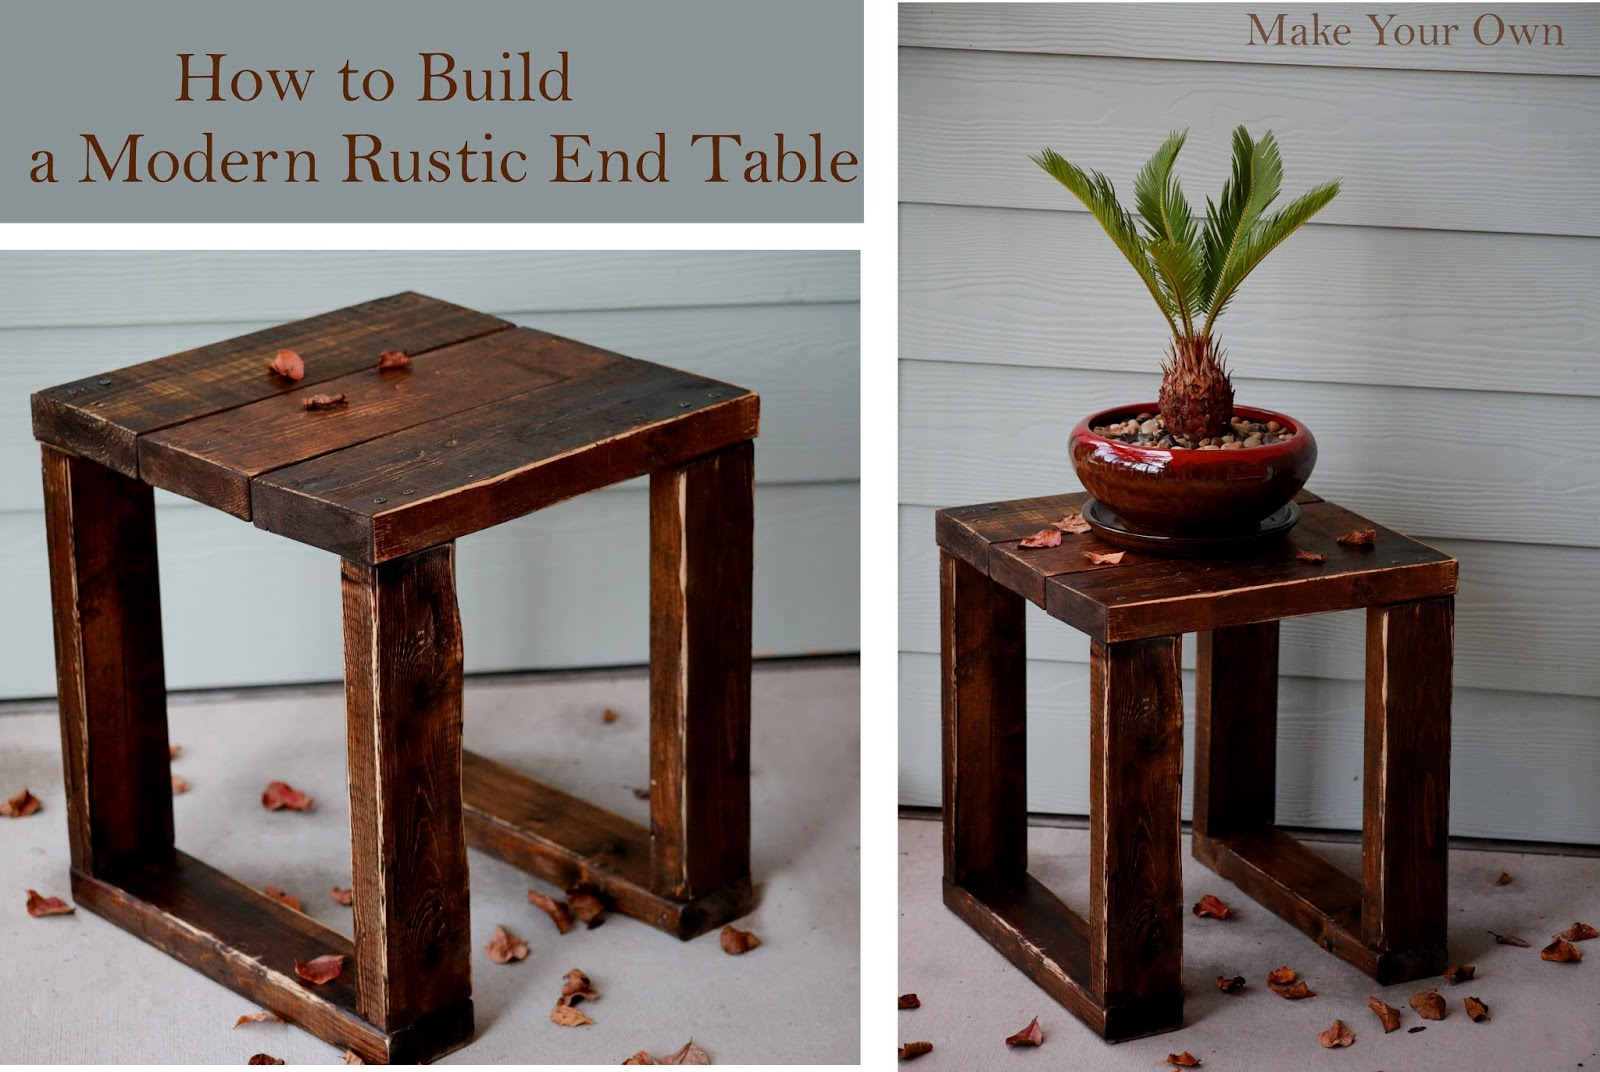 Make Your Own How To Build A Modern Rustic End Table